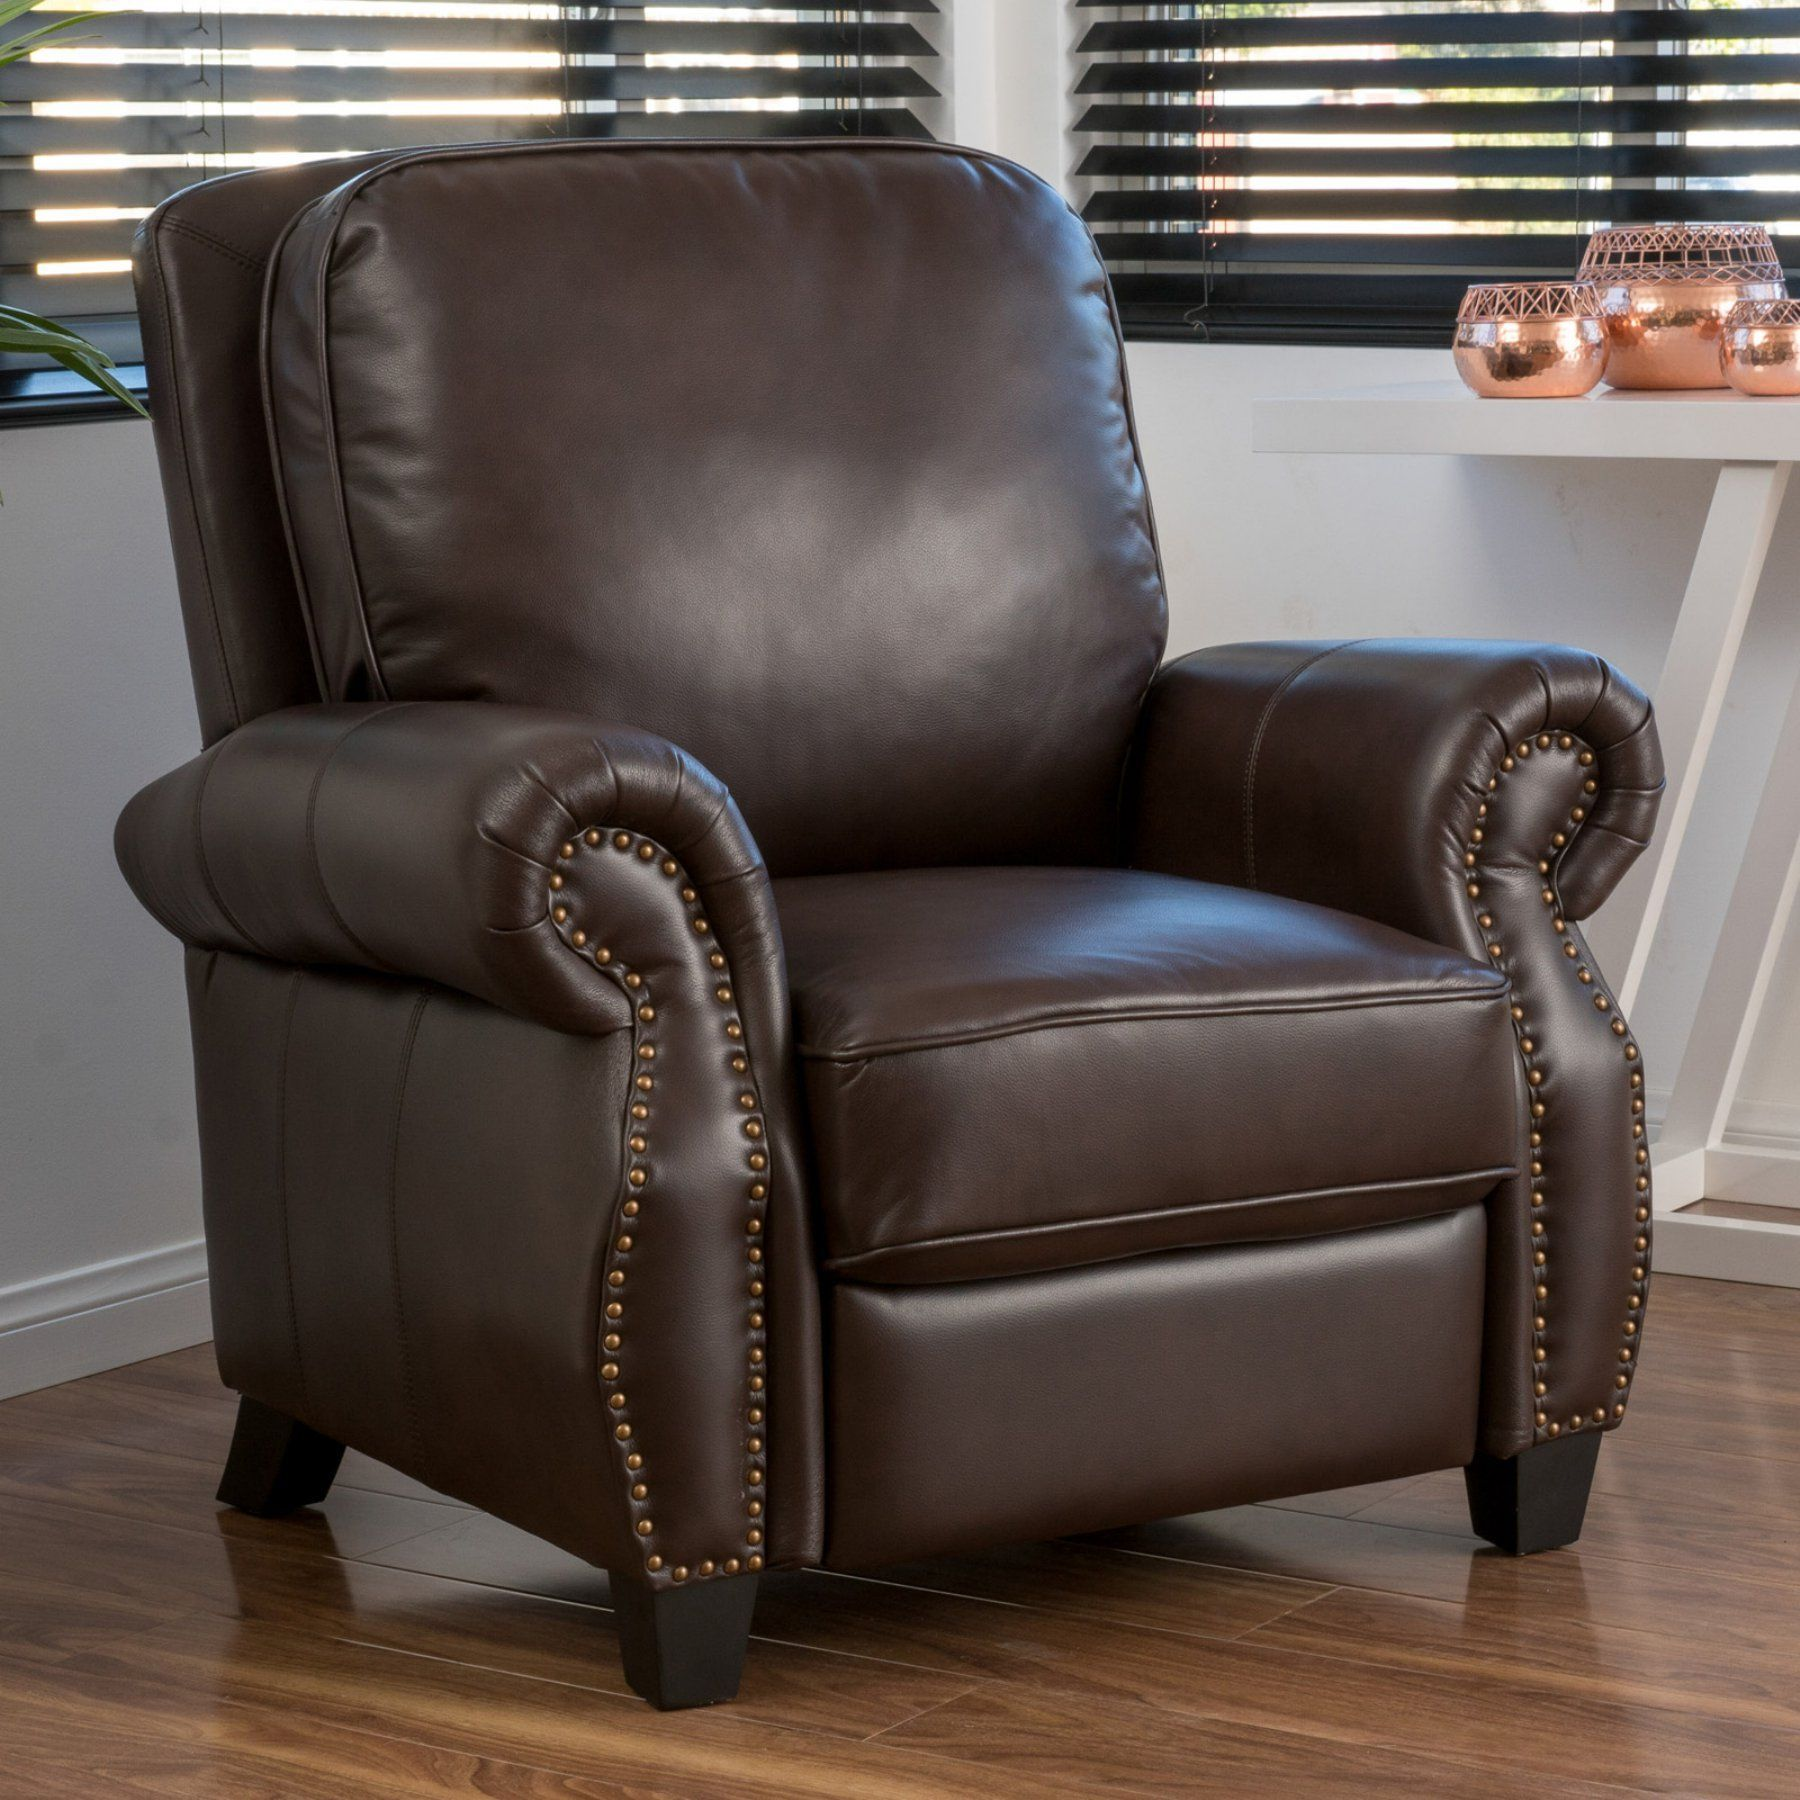 Best Selling Home Decor Tully Recliner